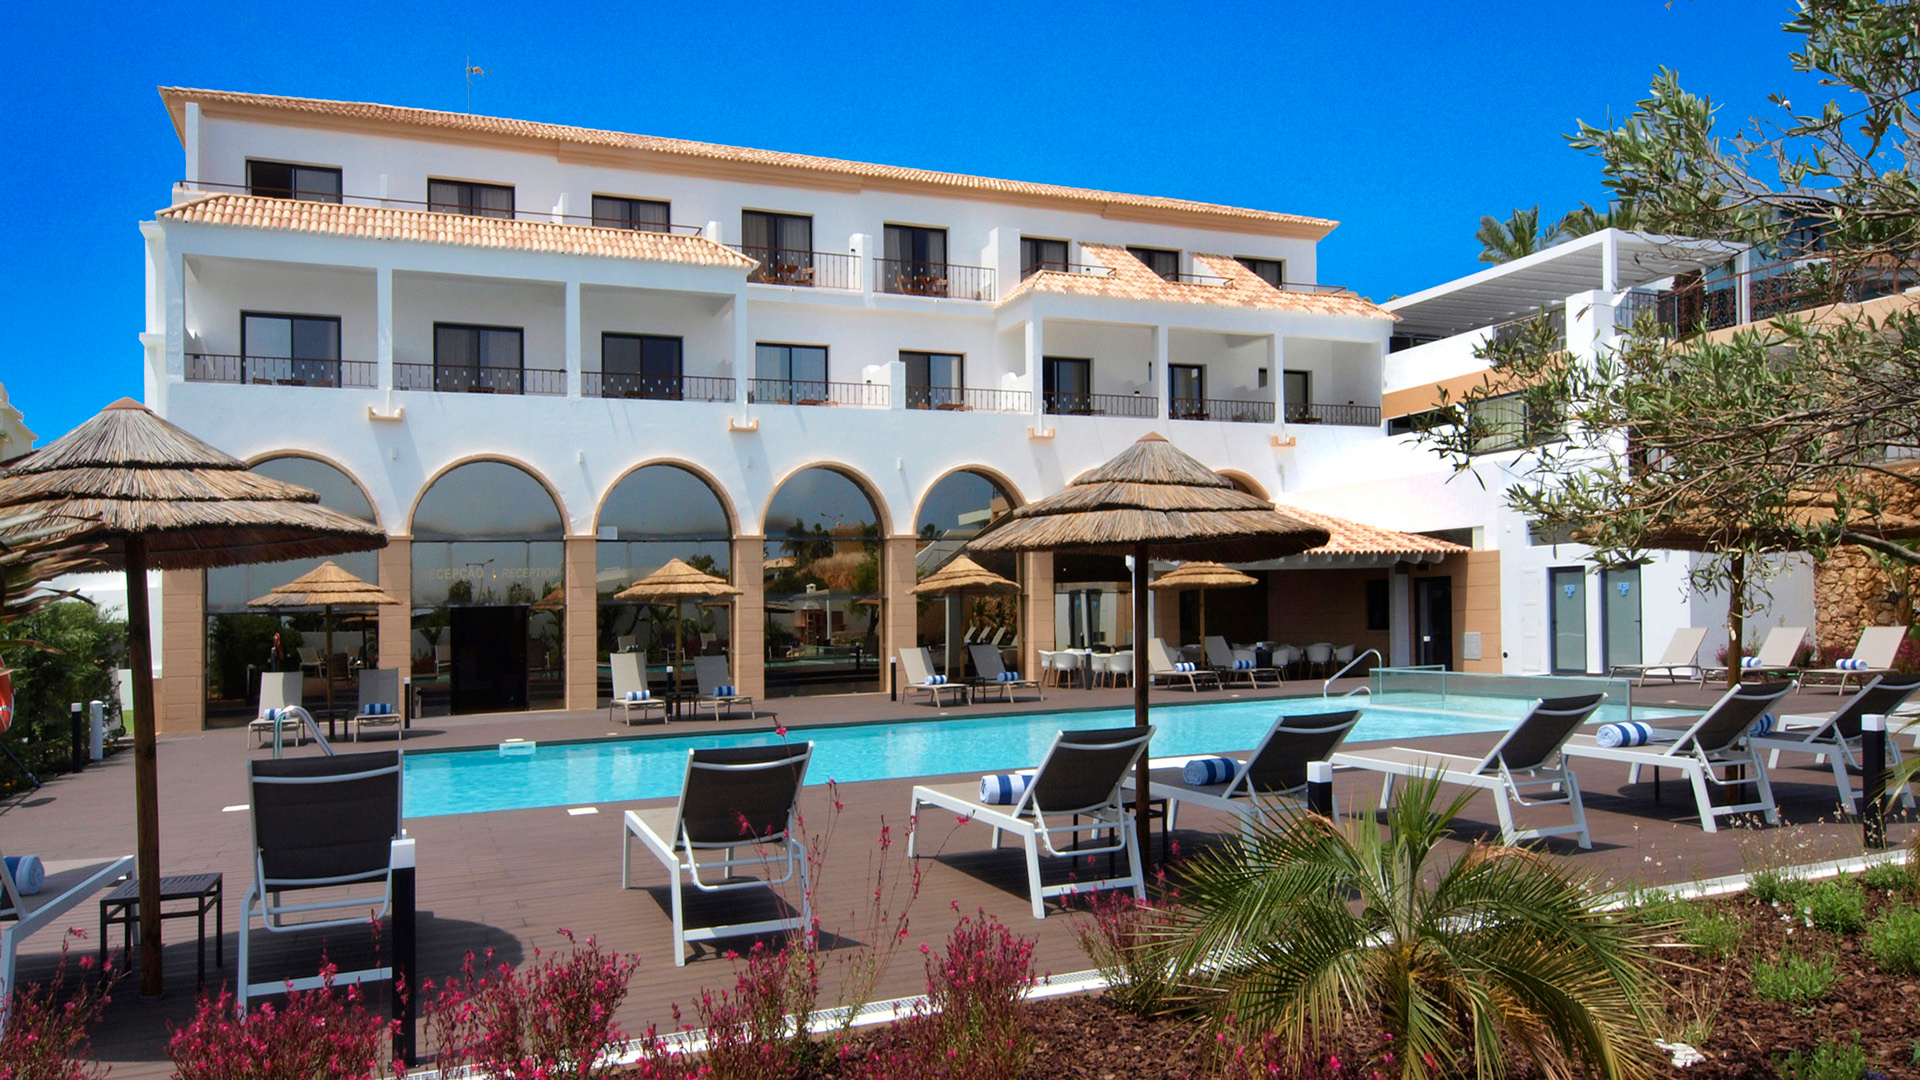 Investment opportunity for Touristic use, near Lagos, West Algarve | LG940 An investment opportunity to purchase an 18 room hotel in a sought after area of Lagos, within 400m of the beach at Porto do Mós.